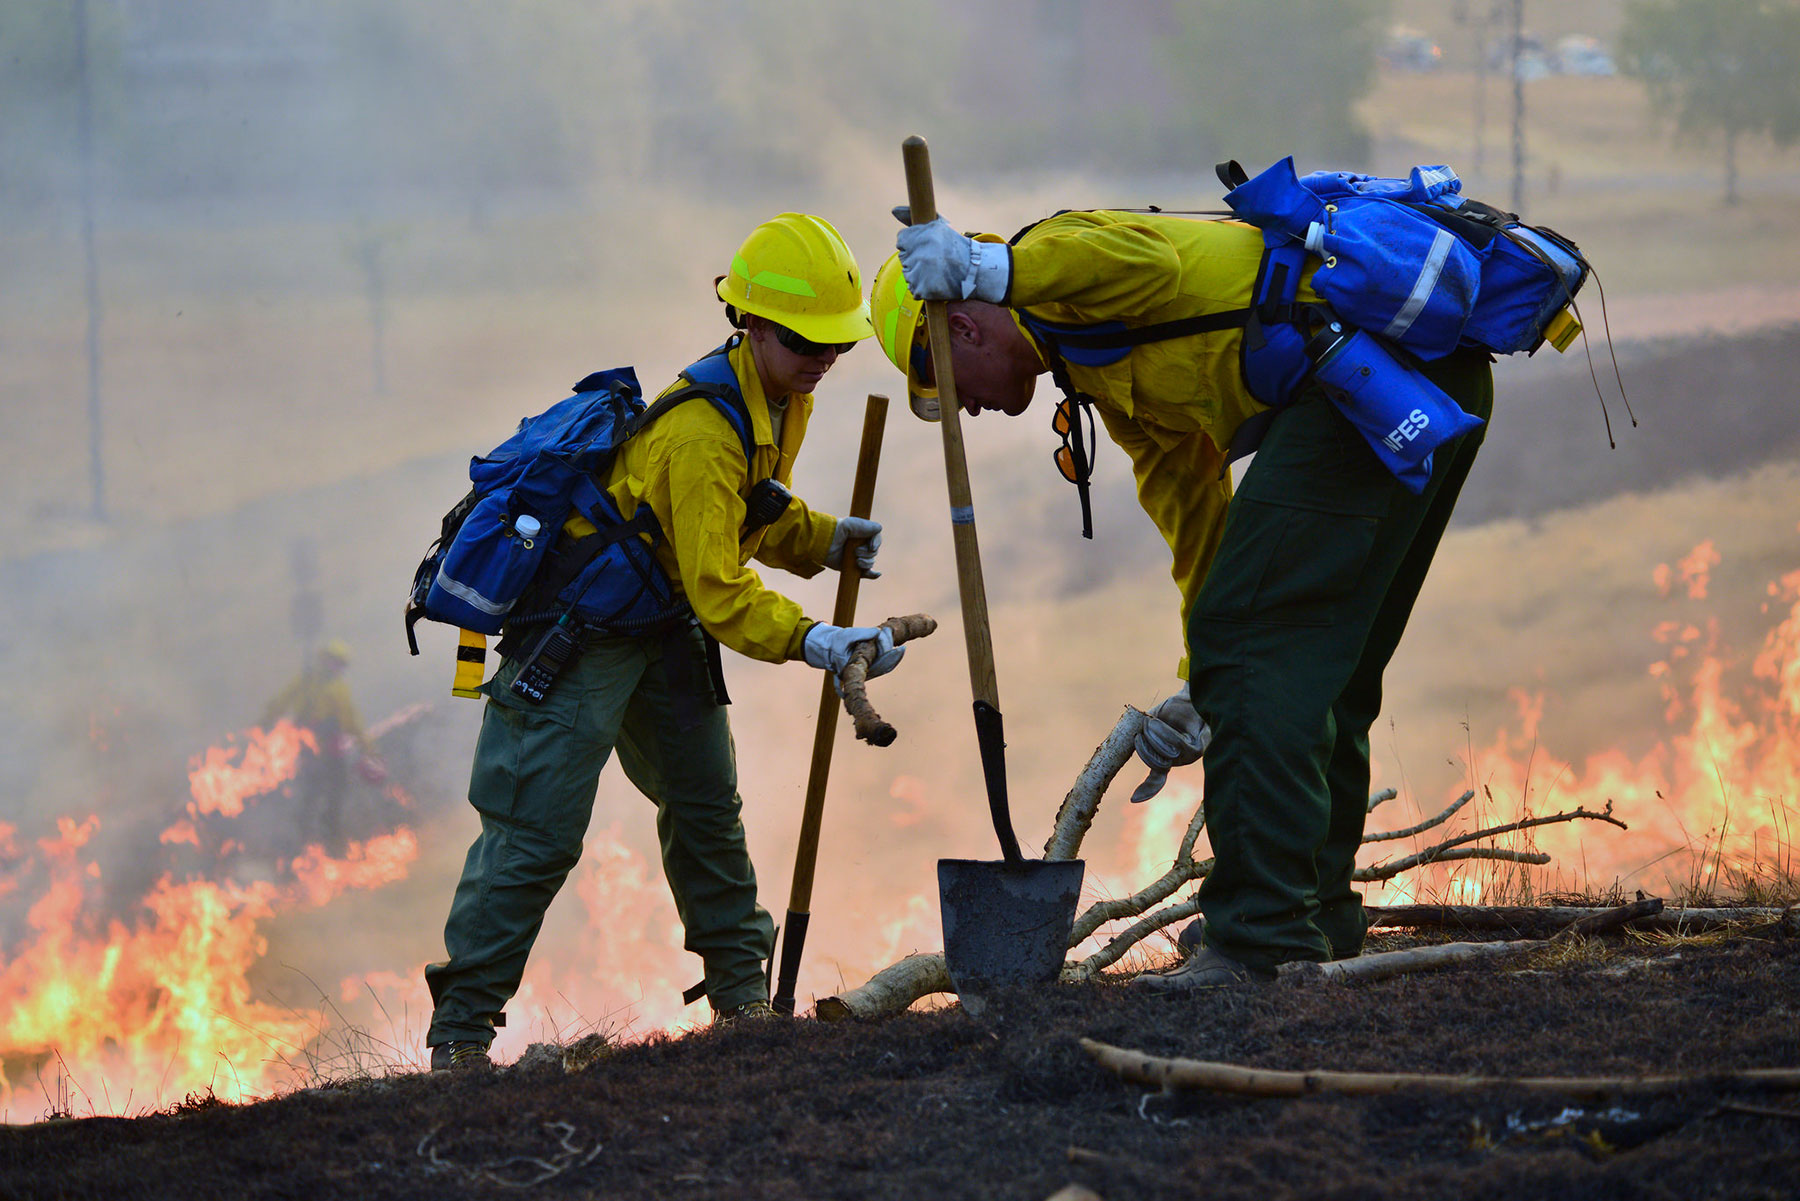 Oregon Army National Guard Soldiers work together during a wild land fire field training exercise held at the Oregon Department of Public Safety Standards (DPSST) and Training in Salem, Oregon, August 28, 2017. (Oregon Military Department/Leslie Reed.)